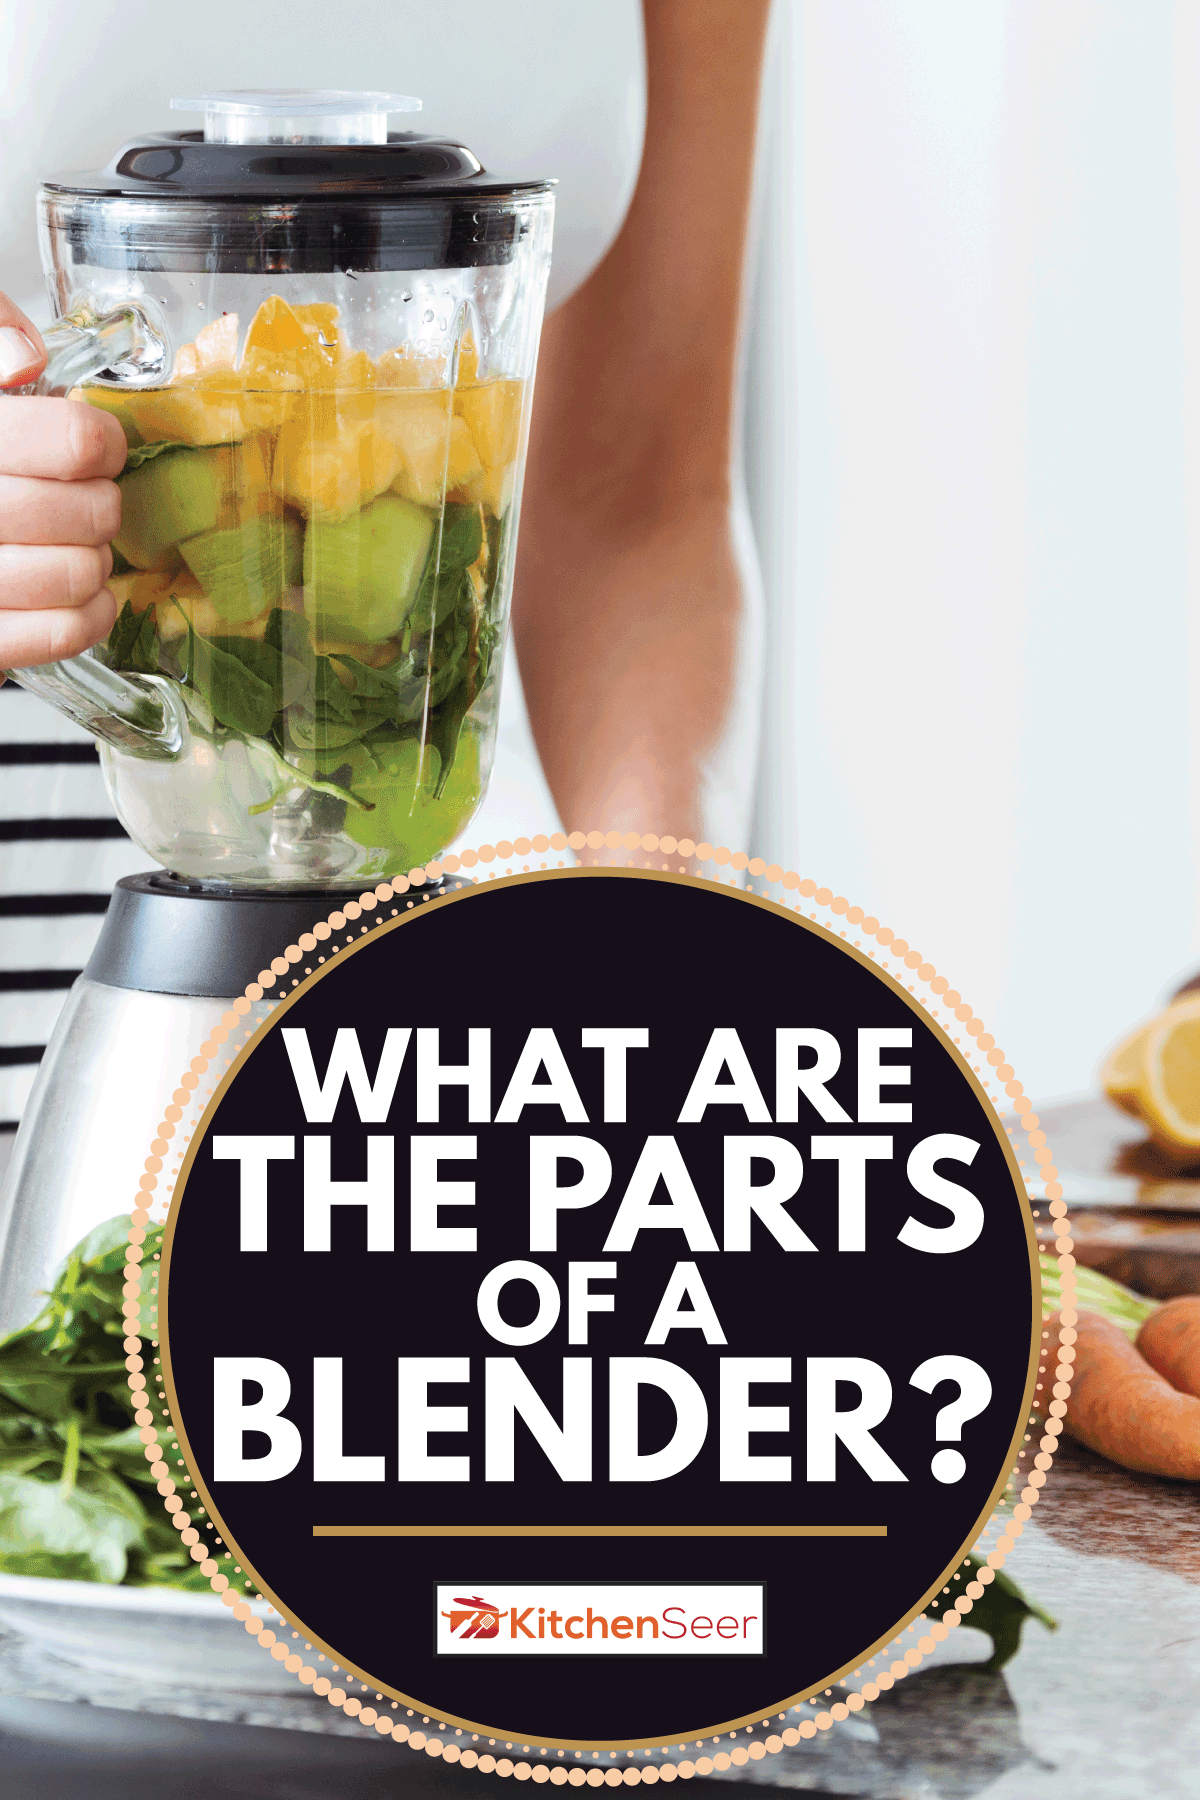 Vegetarian preparing vegan smoothie with rucola, citrus, cucumber in kitchen with carrots on countertop. What Are The Parts Of A Blender